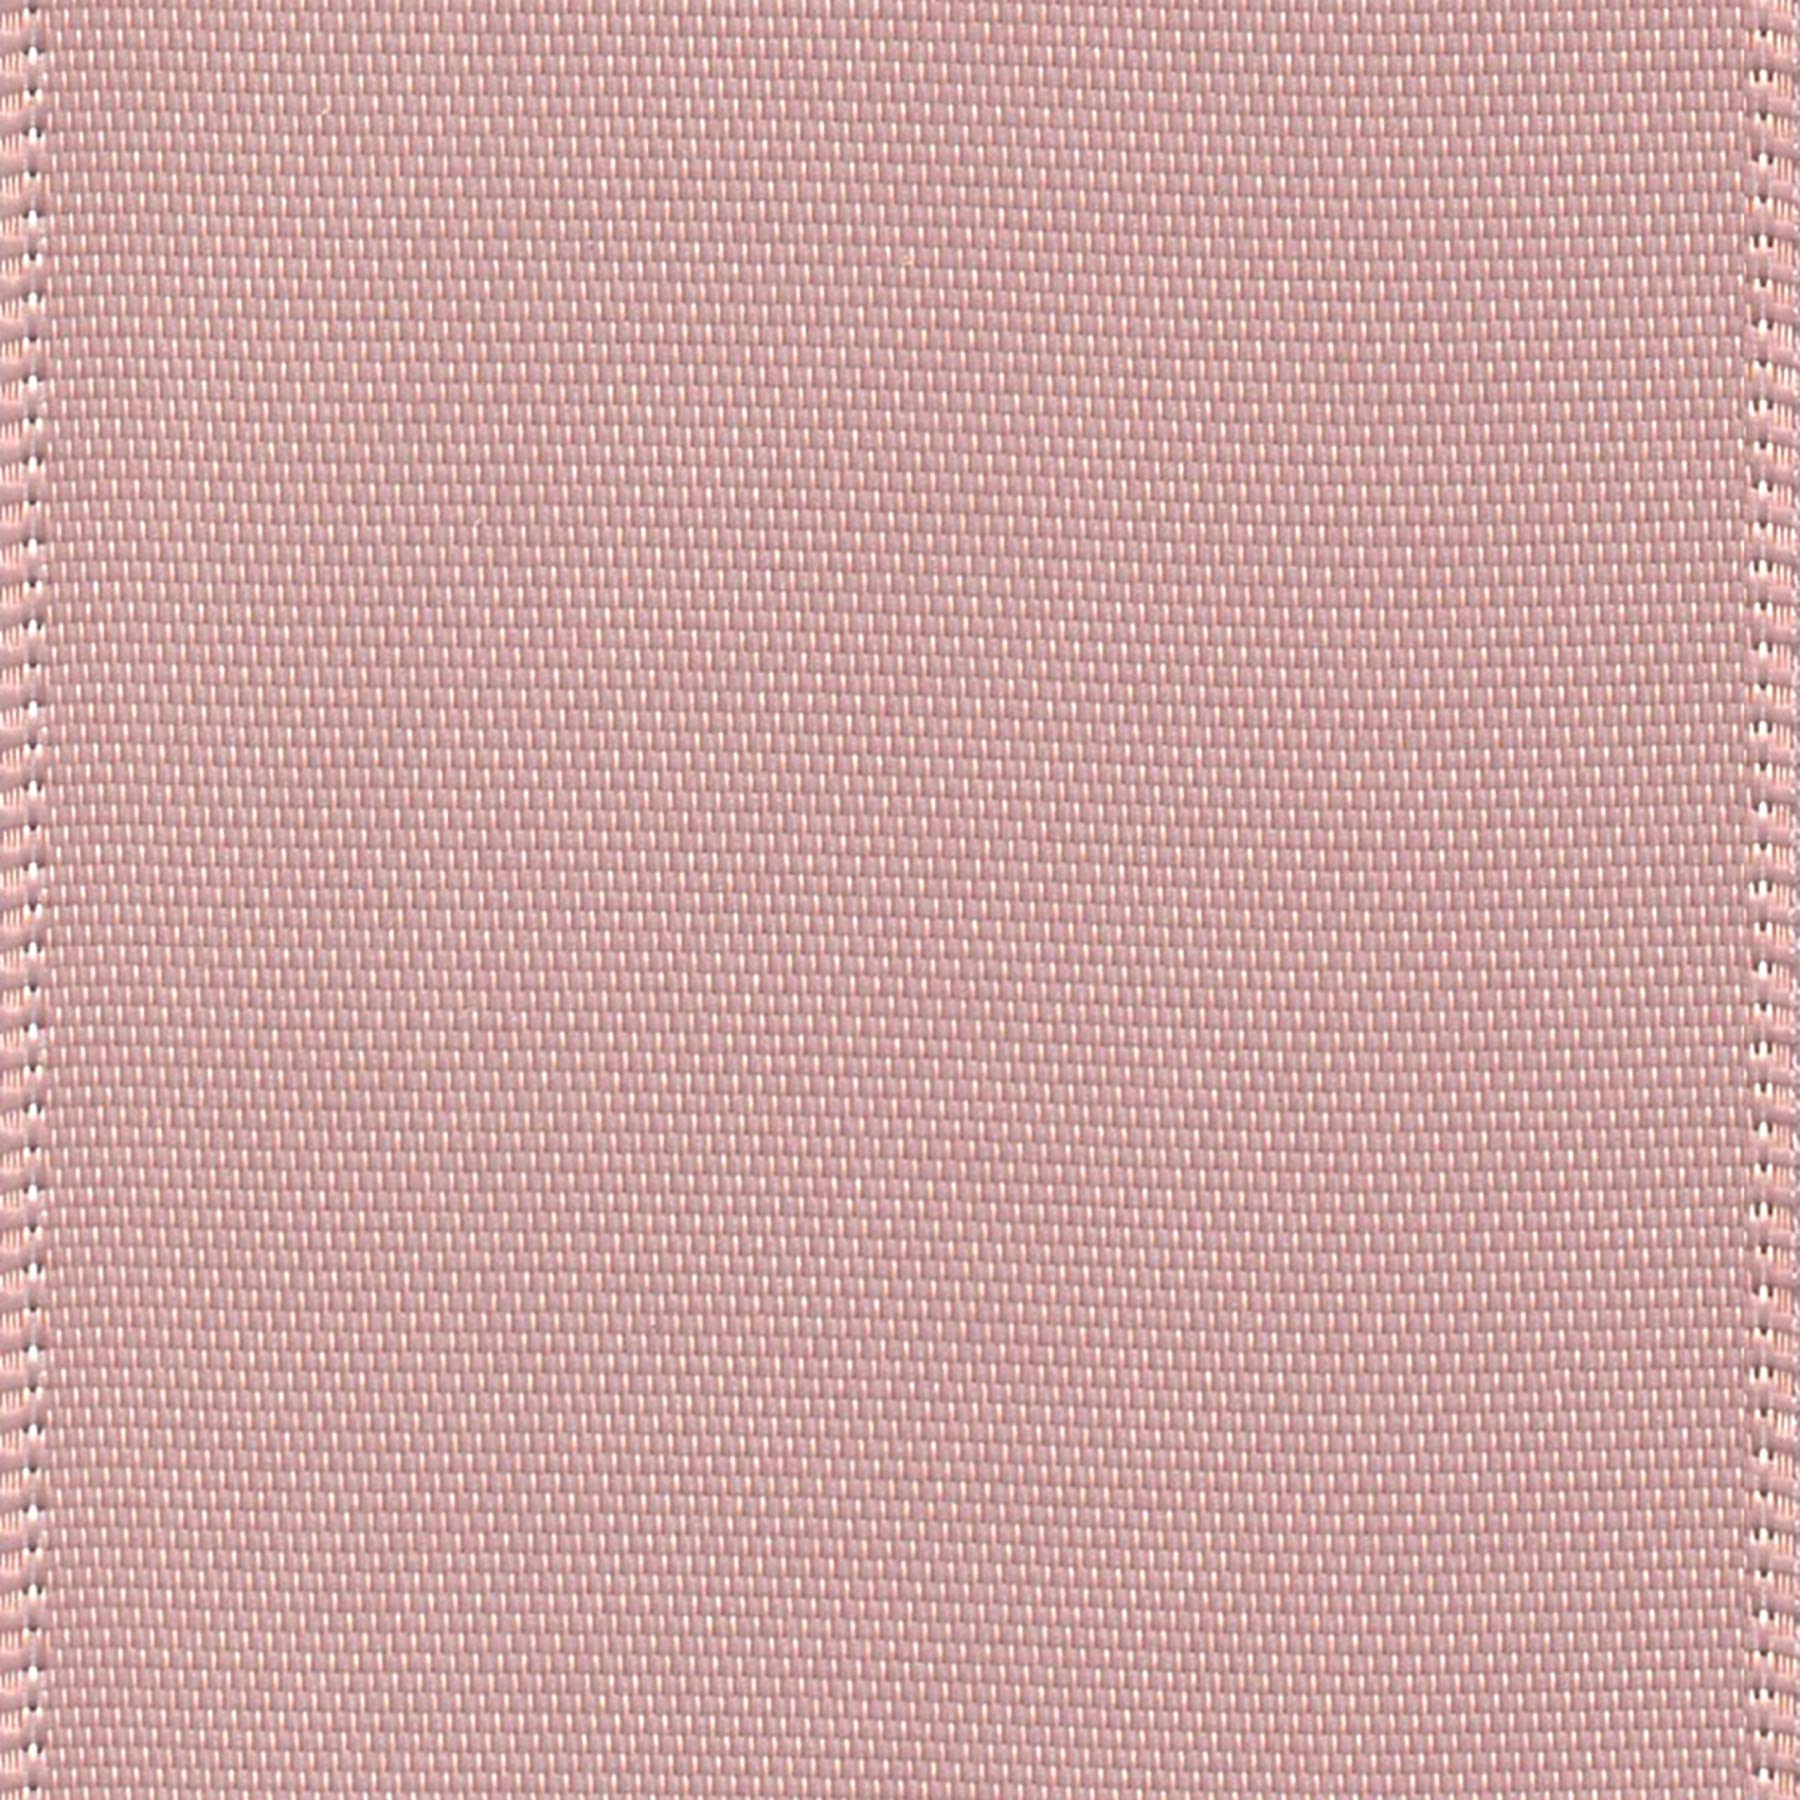 Berwick Offray 1.5'' Wide Double Face Satin Ribbon, Pink Blush Pink, 50 Yds by Berwick (Image #2)